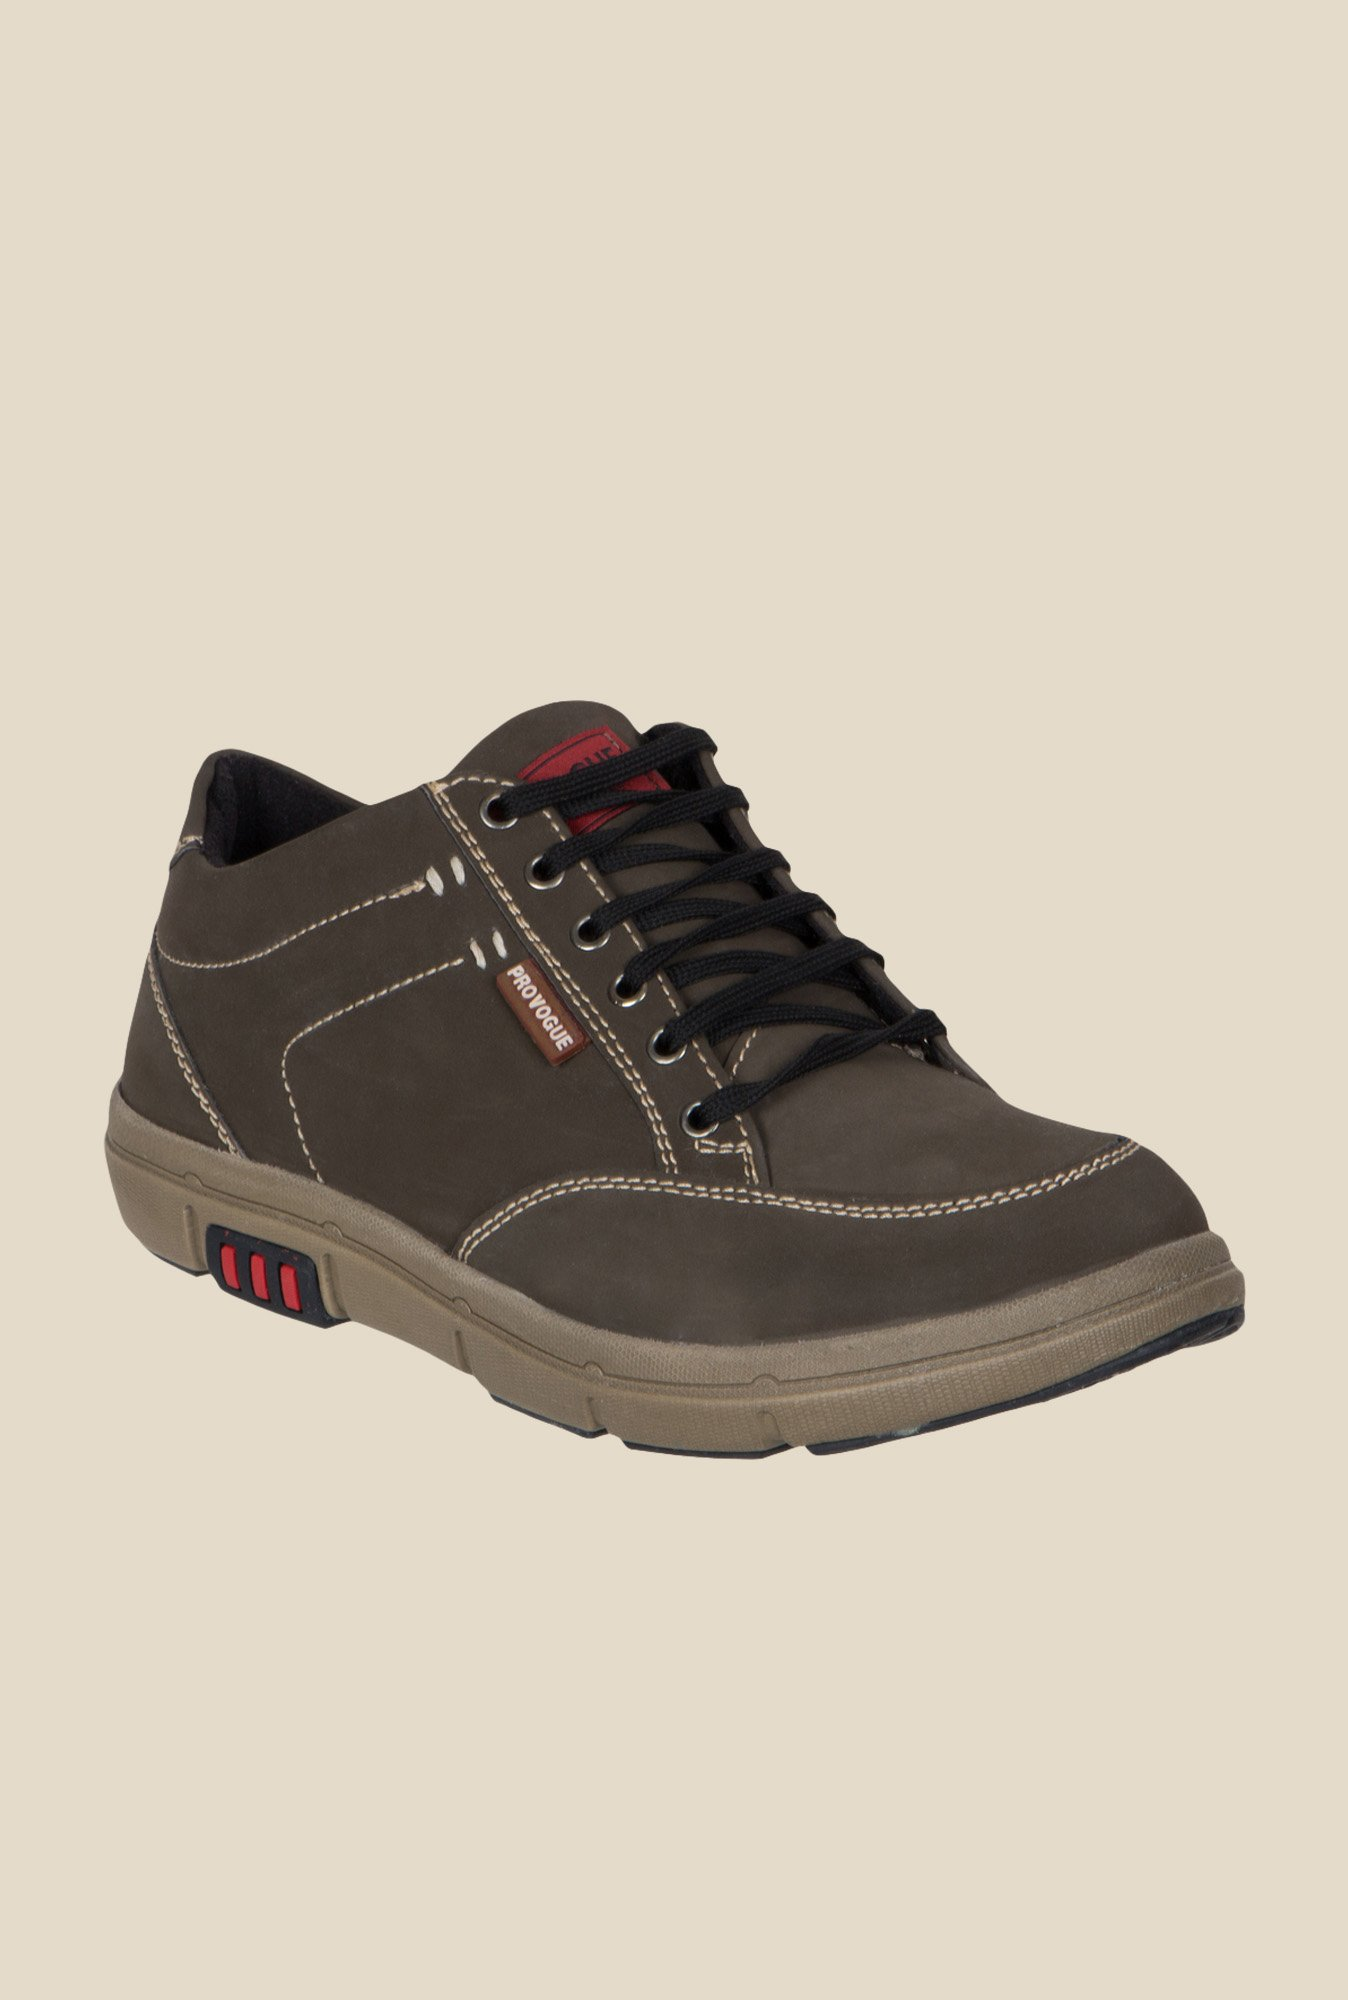 Provogue Olive Casual Shoes